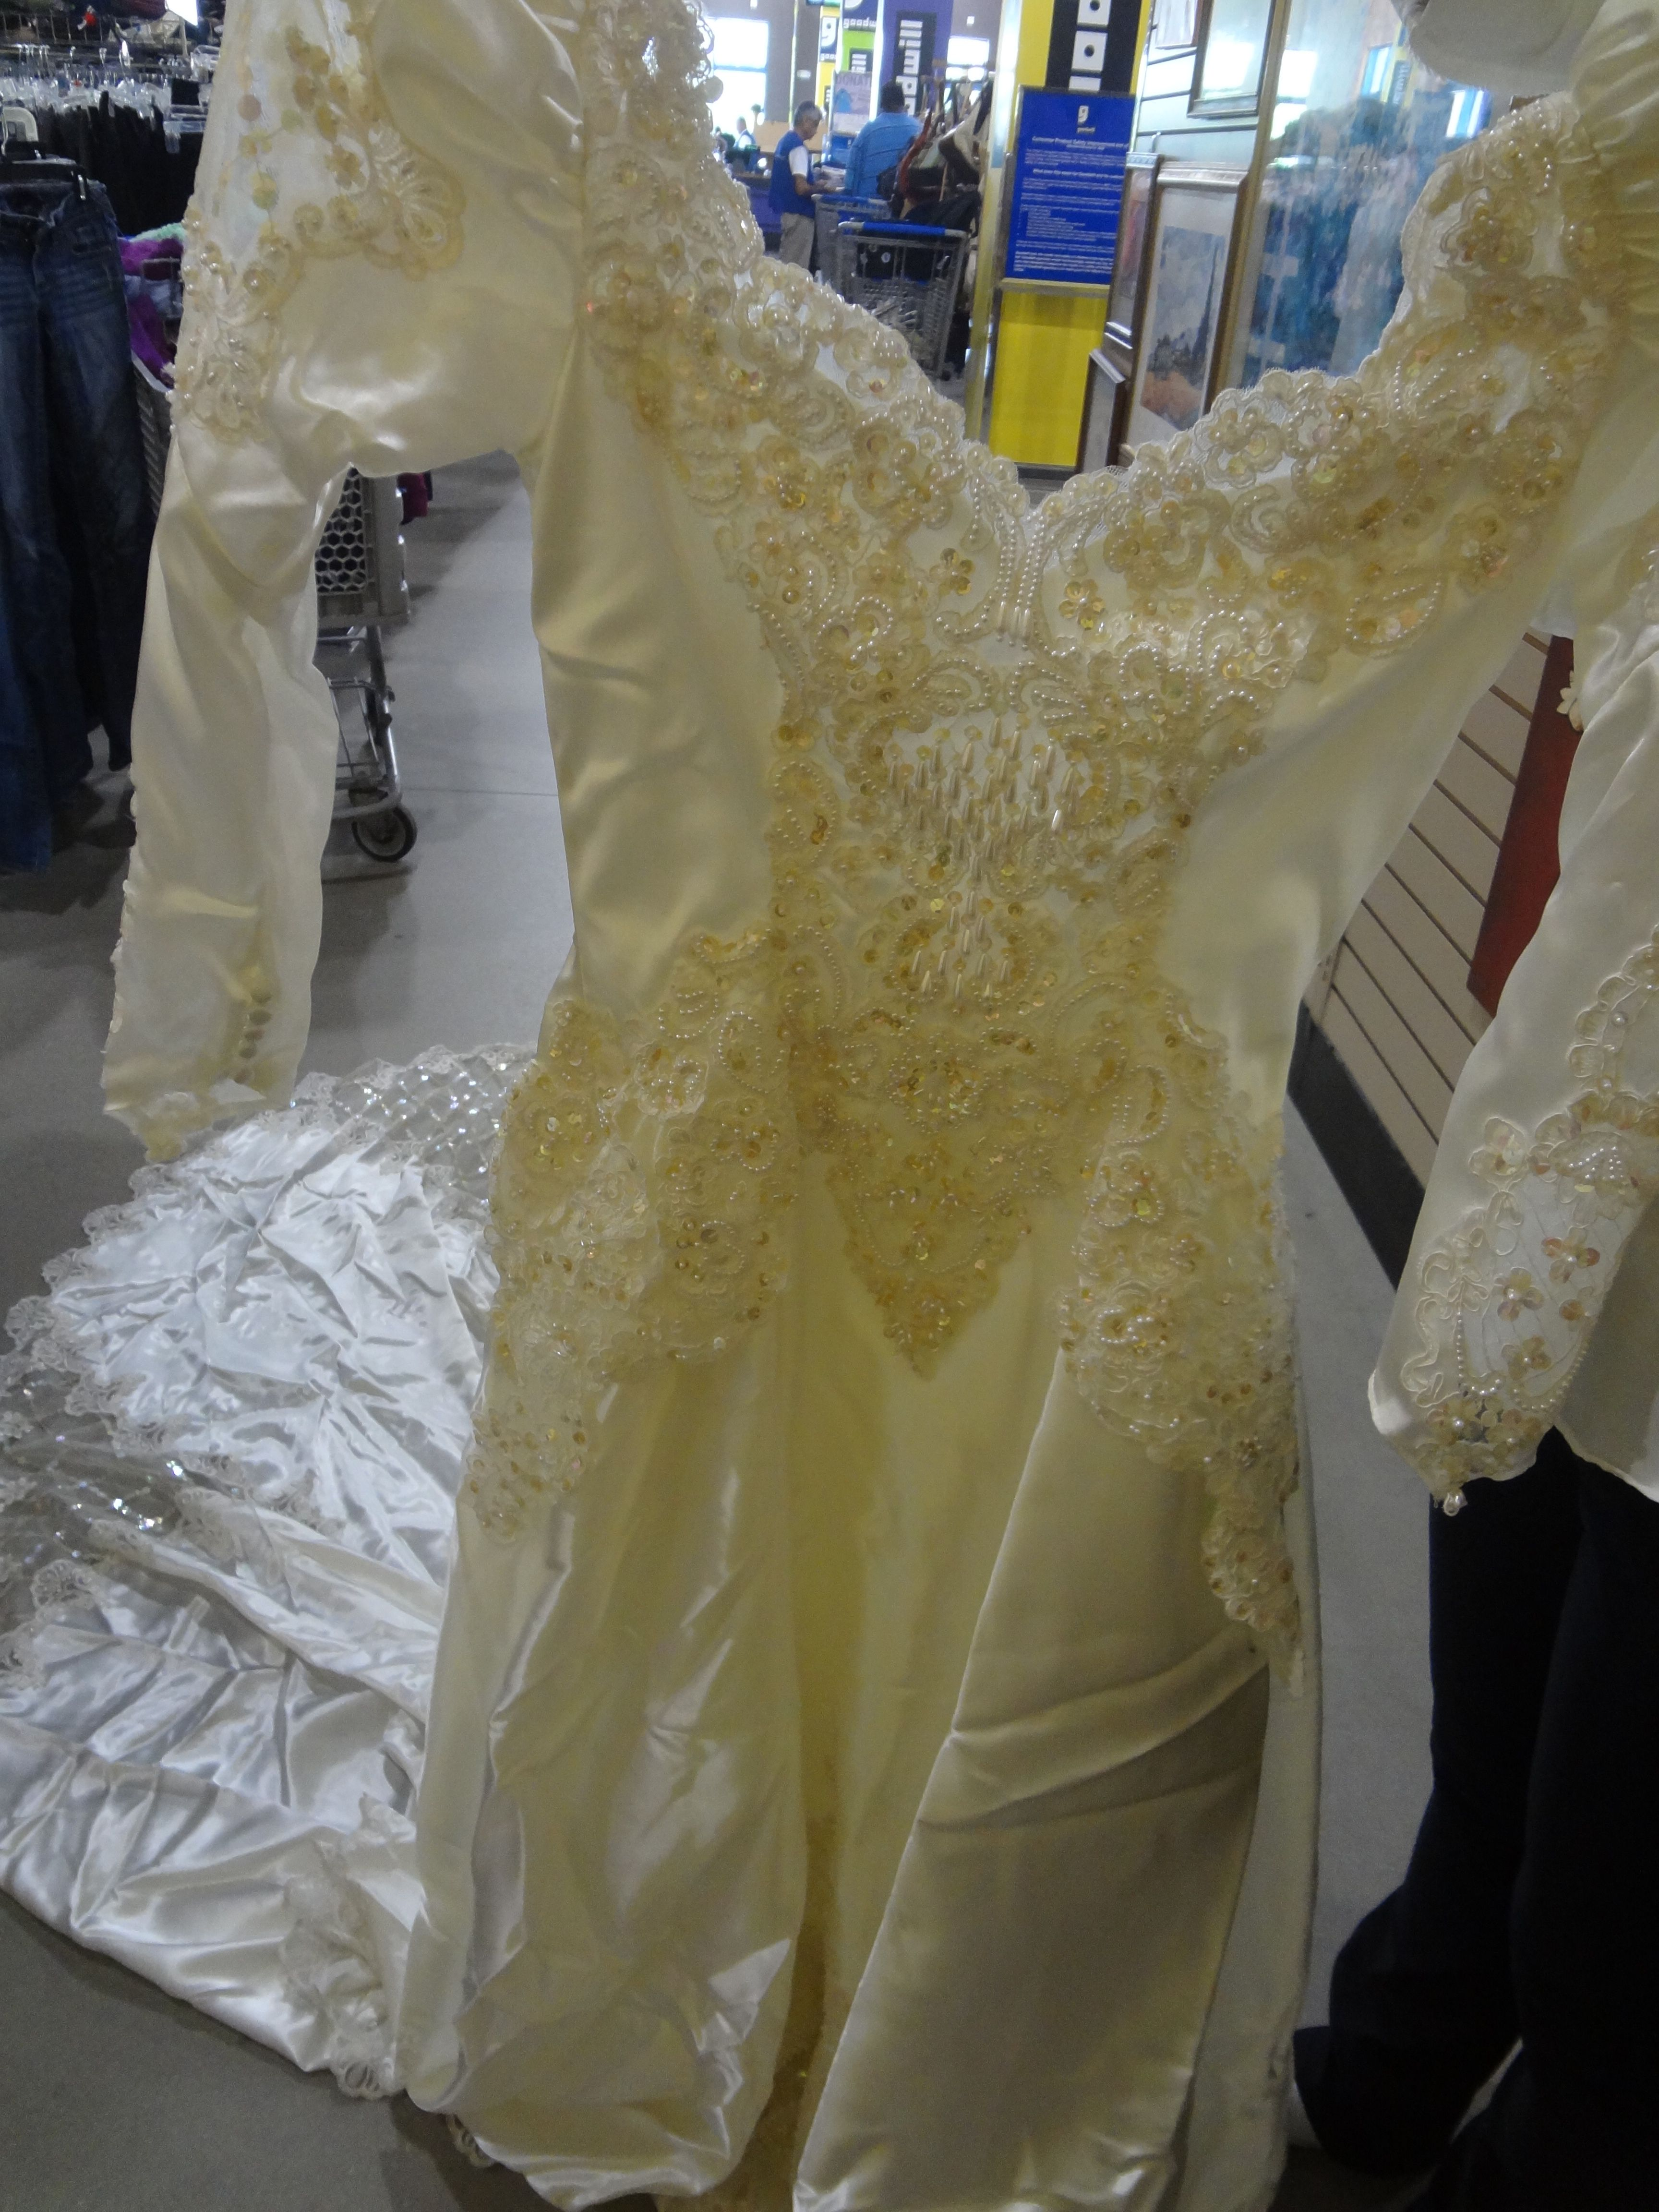 Beautiful gown goodwill lace weddings beautiful gowns